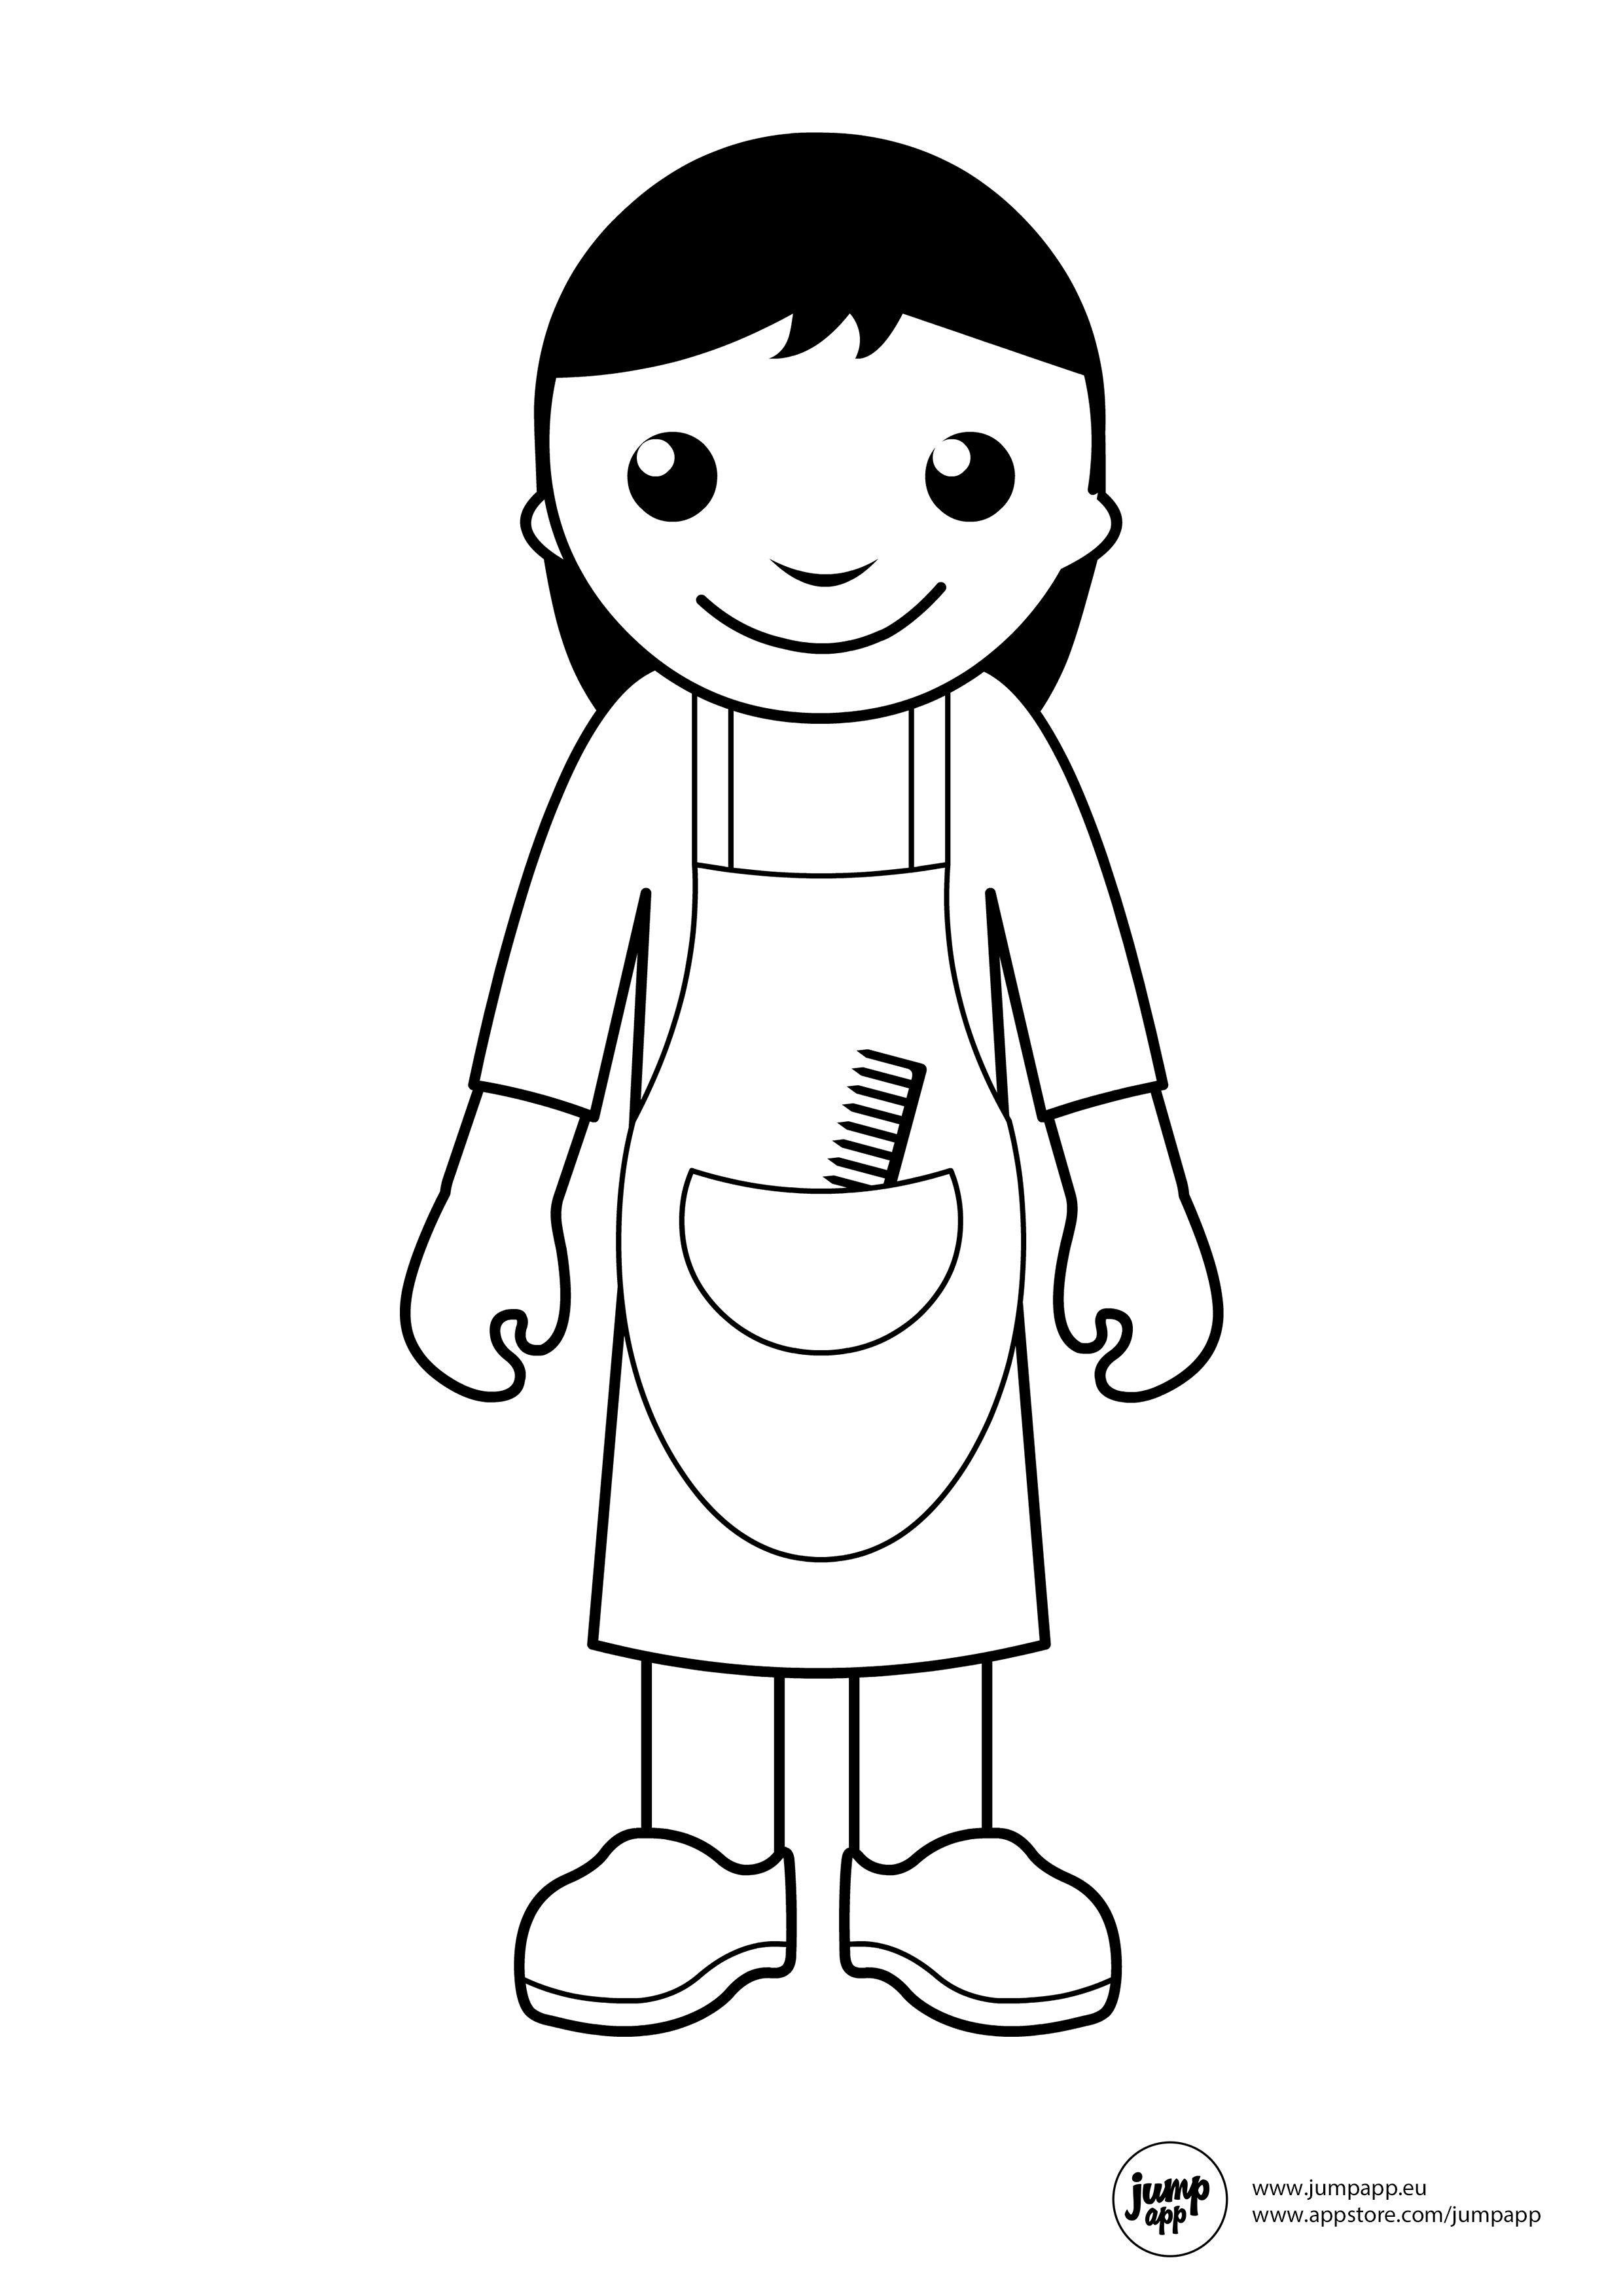 hairdresser | Printable Coloring Pages | Pinterest | Profesiones